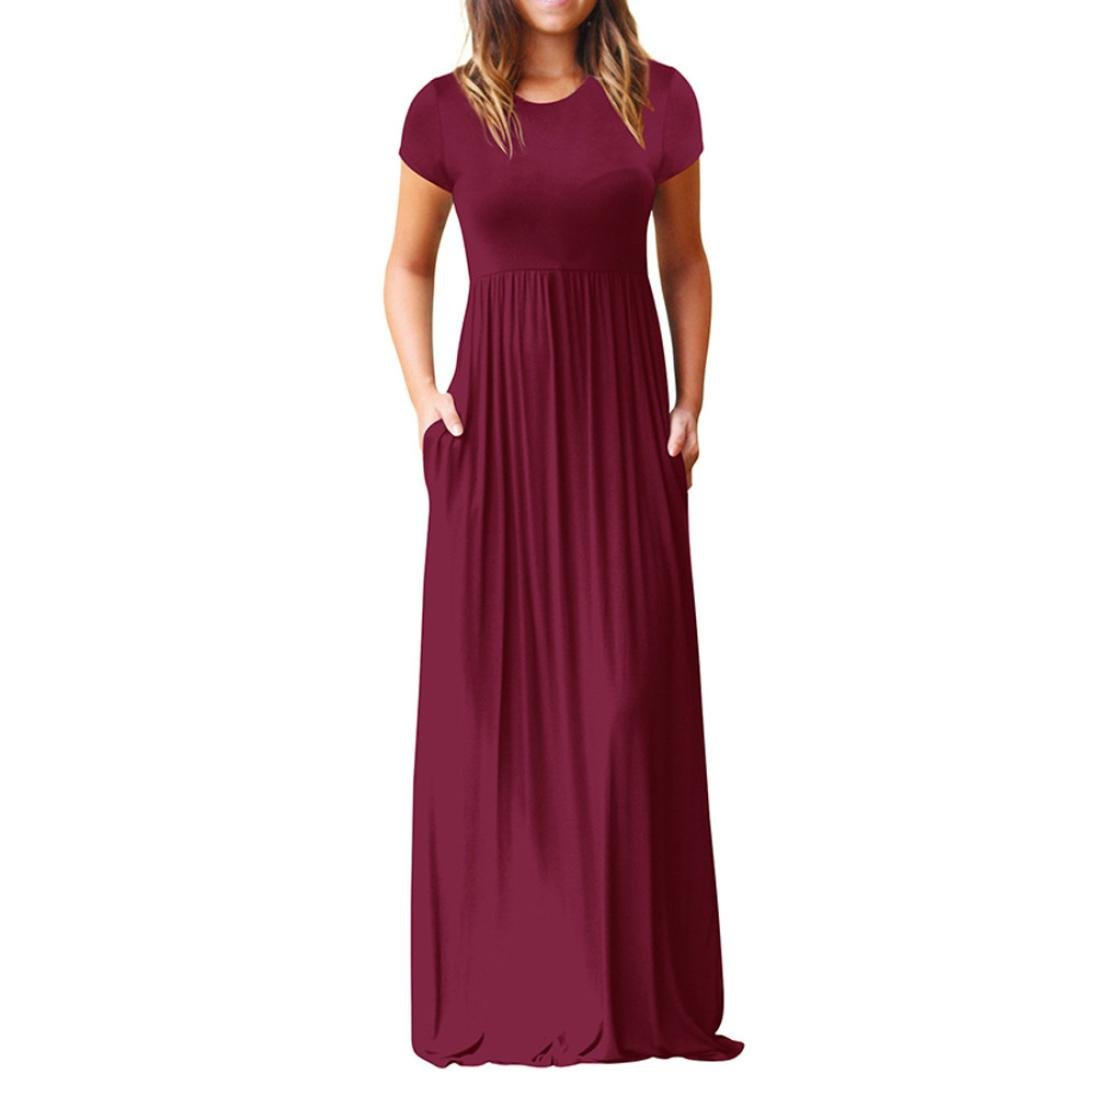 Loose Party Dress for Women O Neck Casual Short Sleeve Floor Length Dress with Pocket